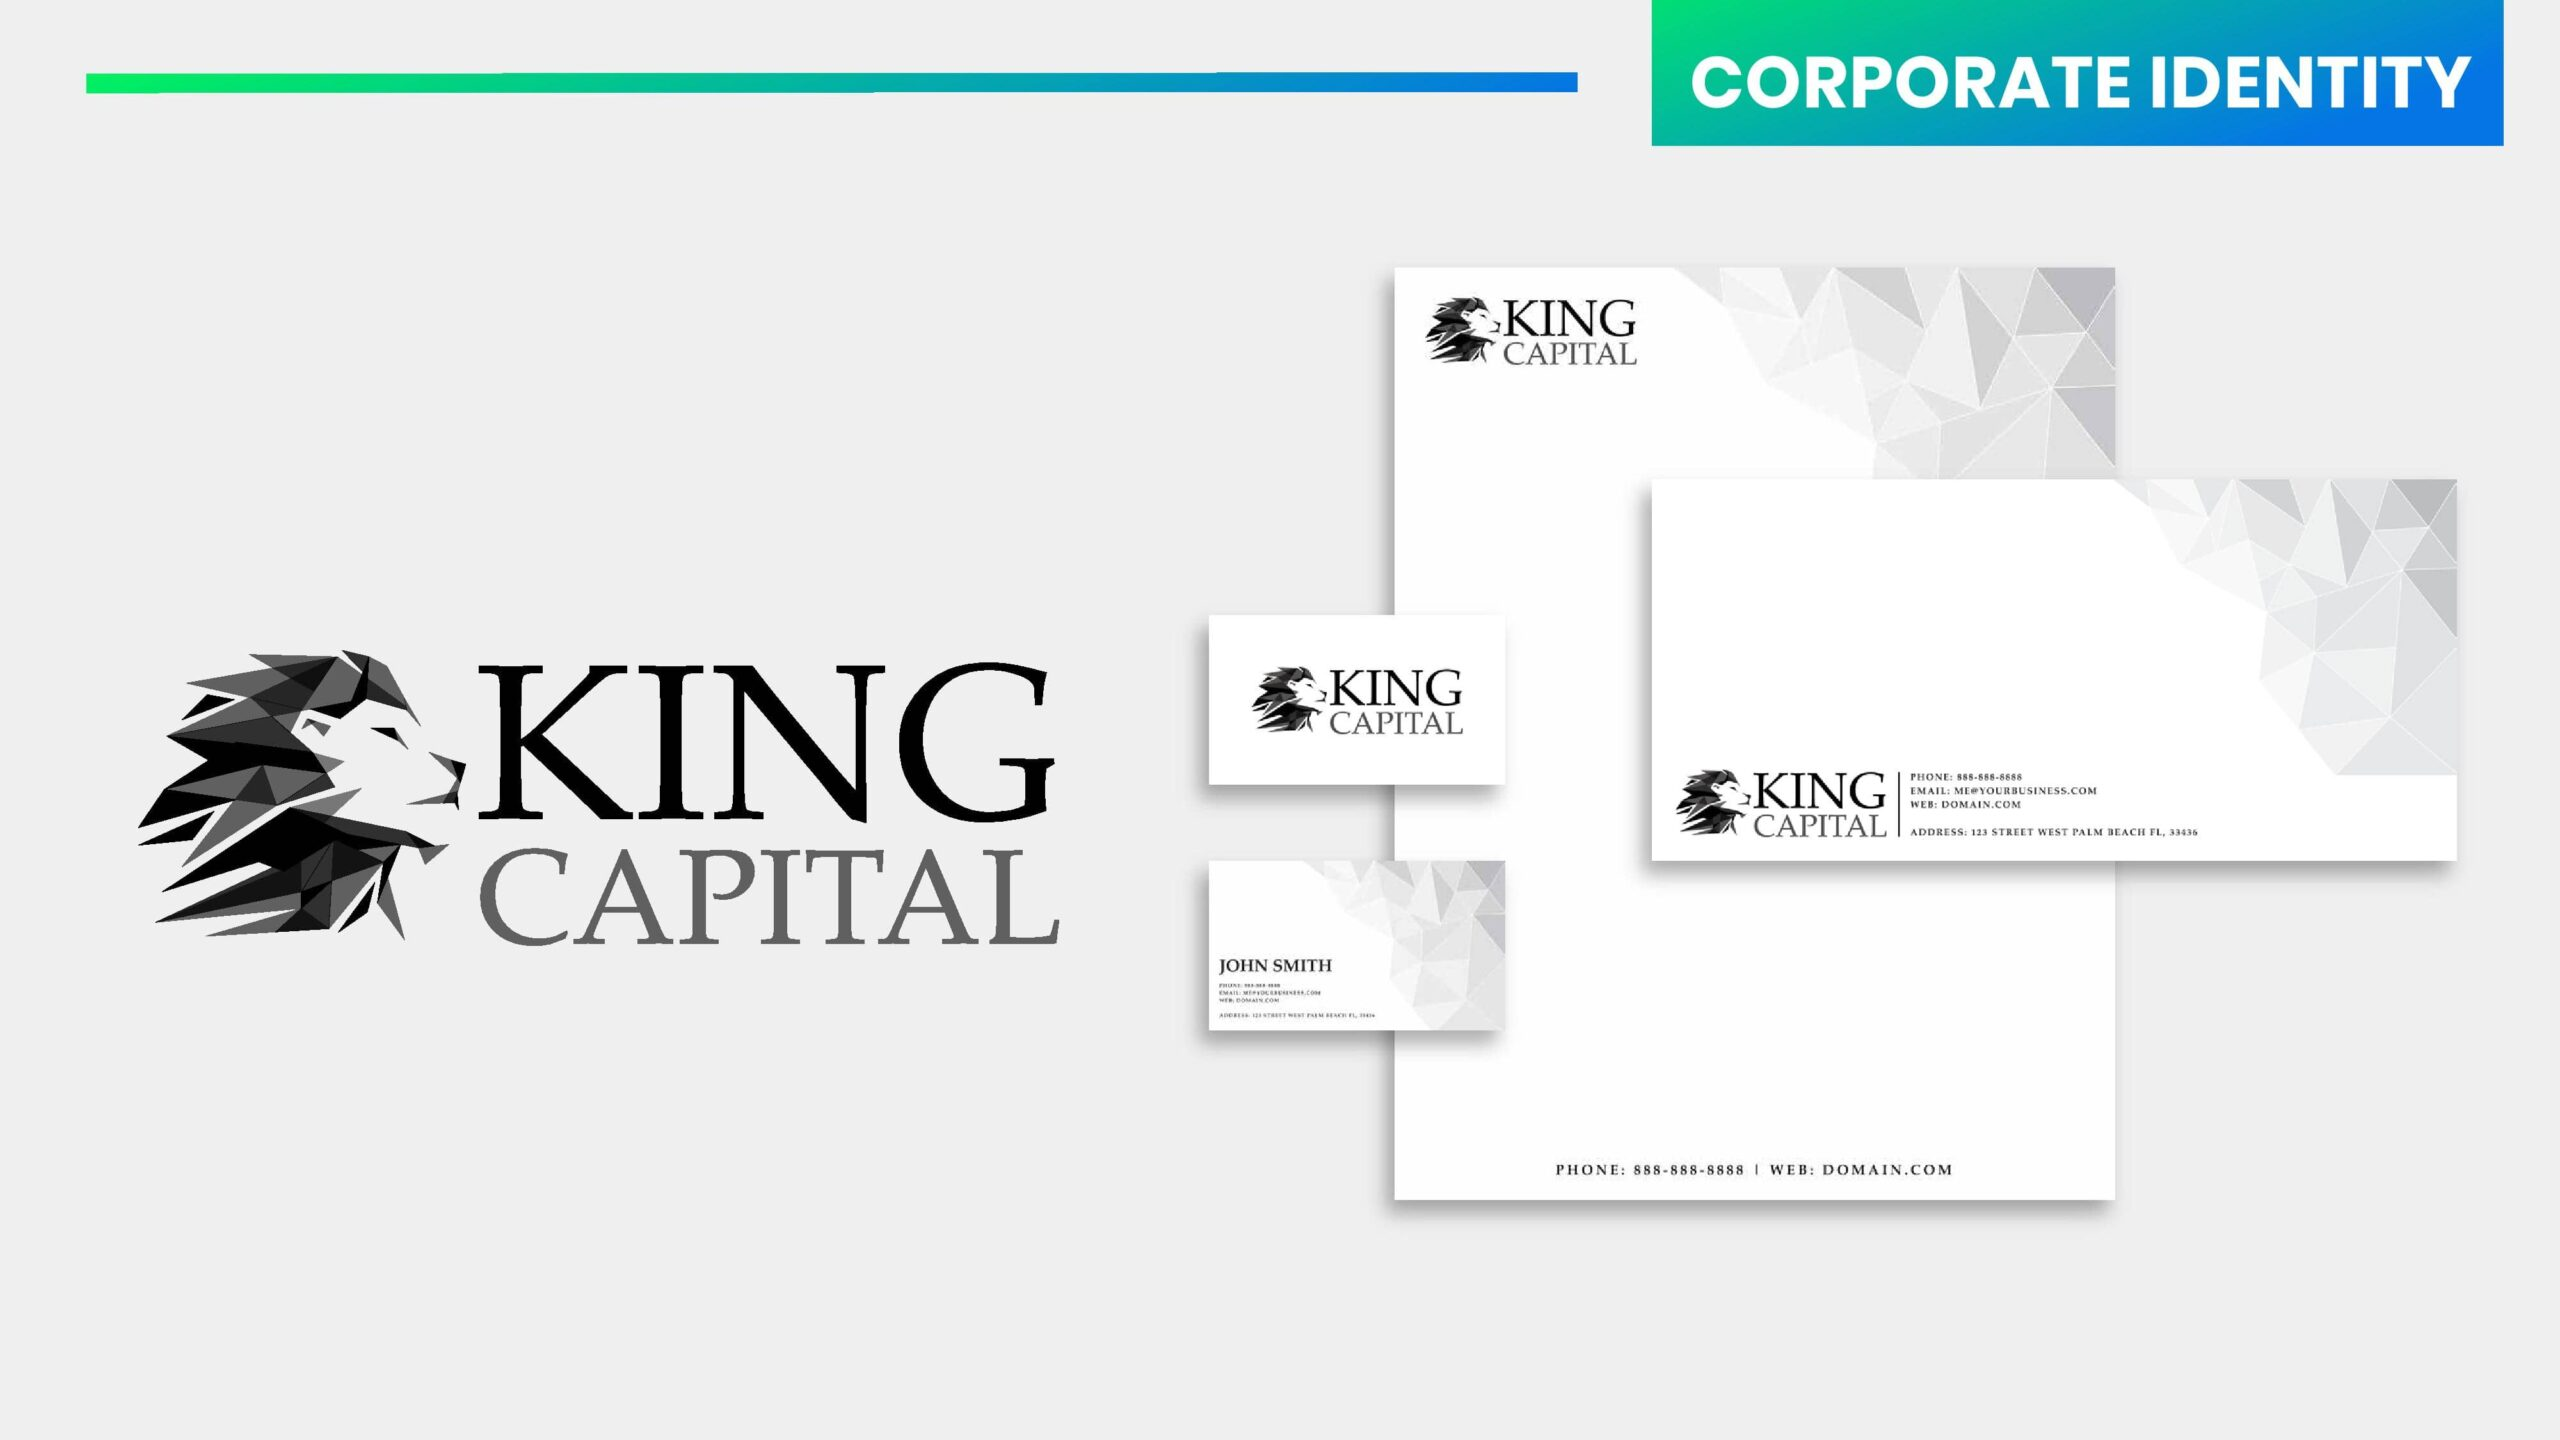 Corporate_ID-page-004-min